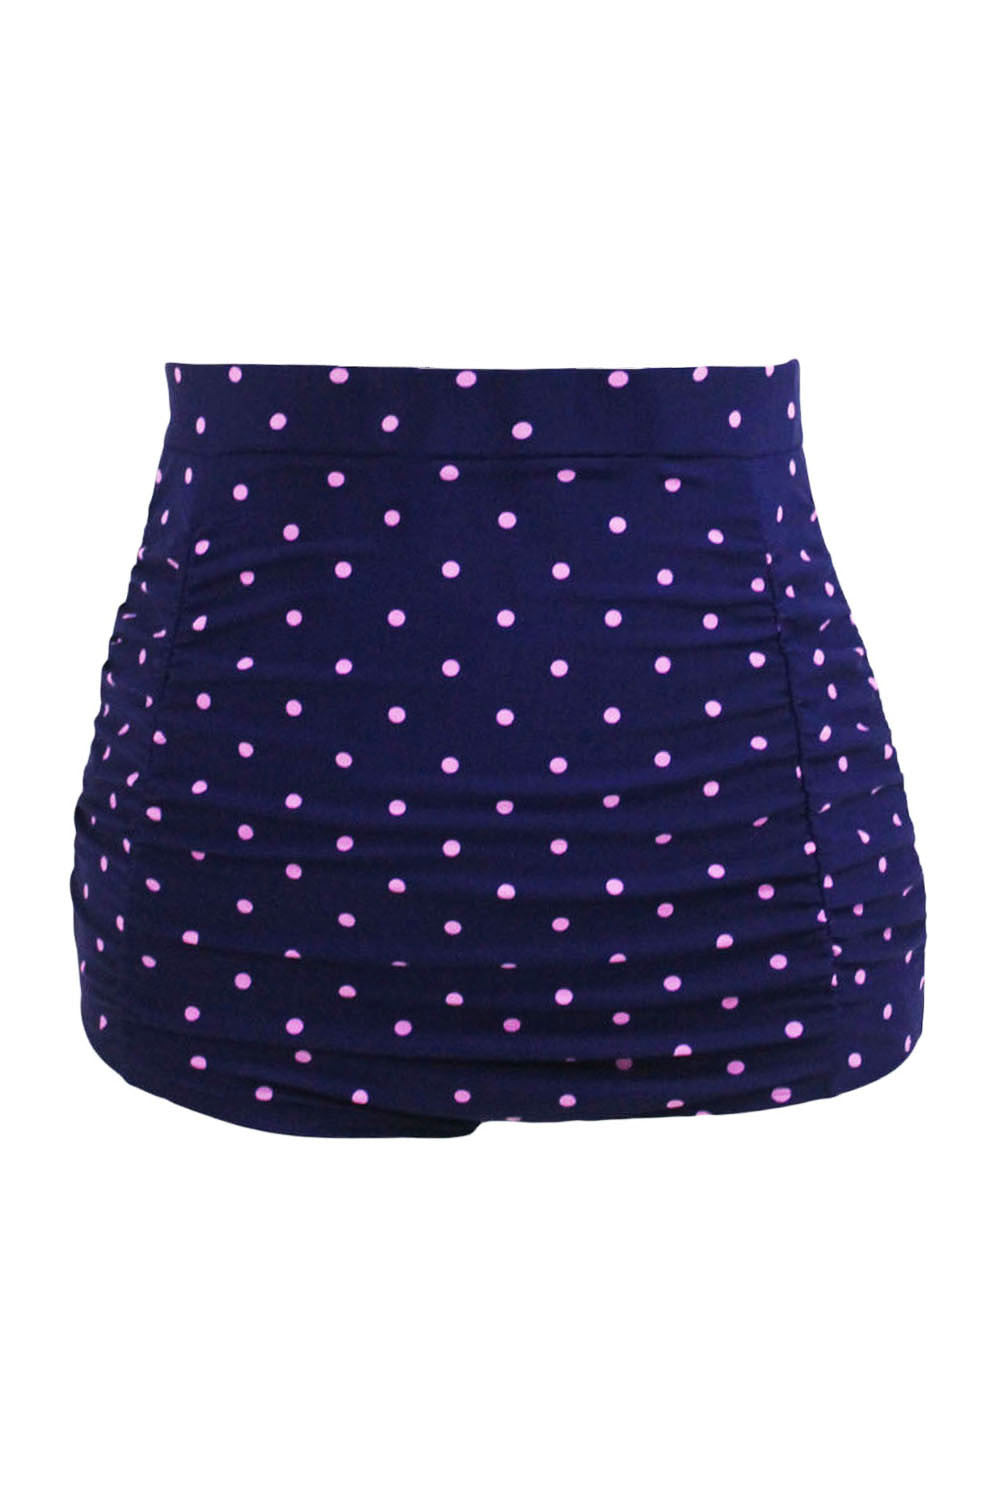 Chicloh Polka Dot Print Retro High Waist Swim Bottom